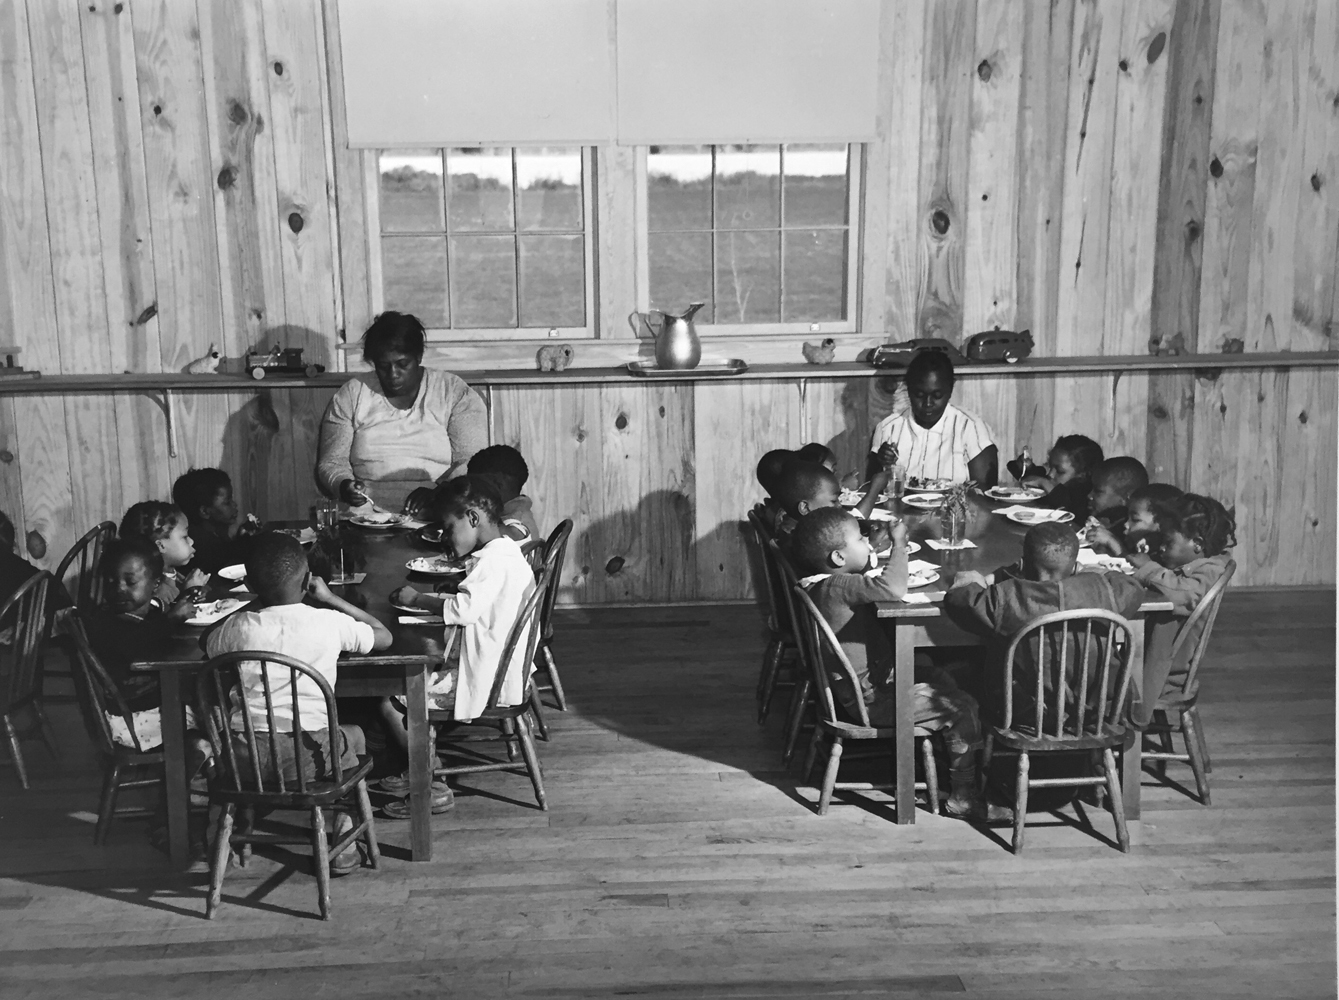 Marion Post Wolcott, Hot lunches for children of agricultural workers in day nursery of Okeechobee Migratory Labor Camp, Belle Glade, FL, 1941, gelatin silver print, 11 x 14 inches, signed by artist, $3000.